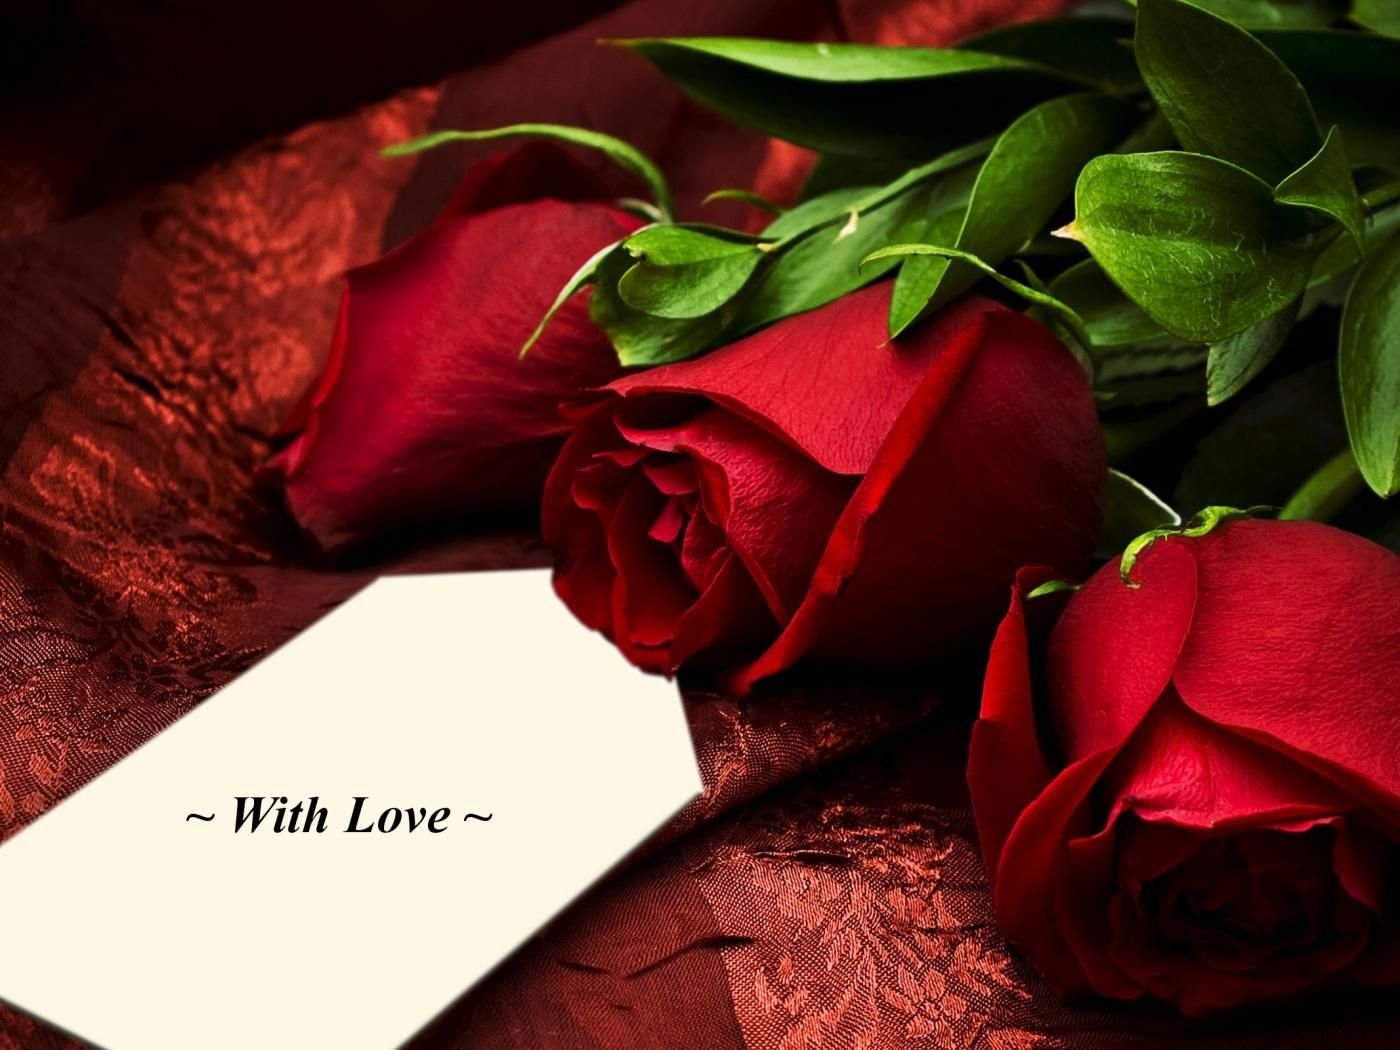 Not Every Flower Can Say Love But A Rose Did What A Lovely Thing A Rose Is Beautiful Red Roses Images Rose Day Wallpaper Beautiful Rose Flowers